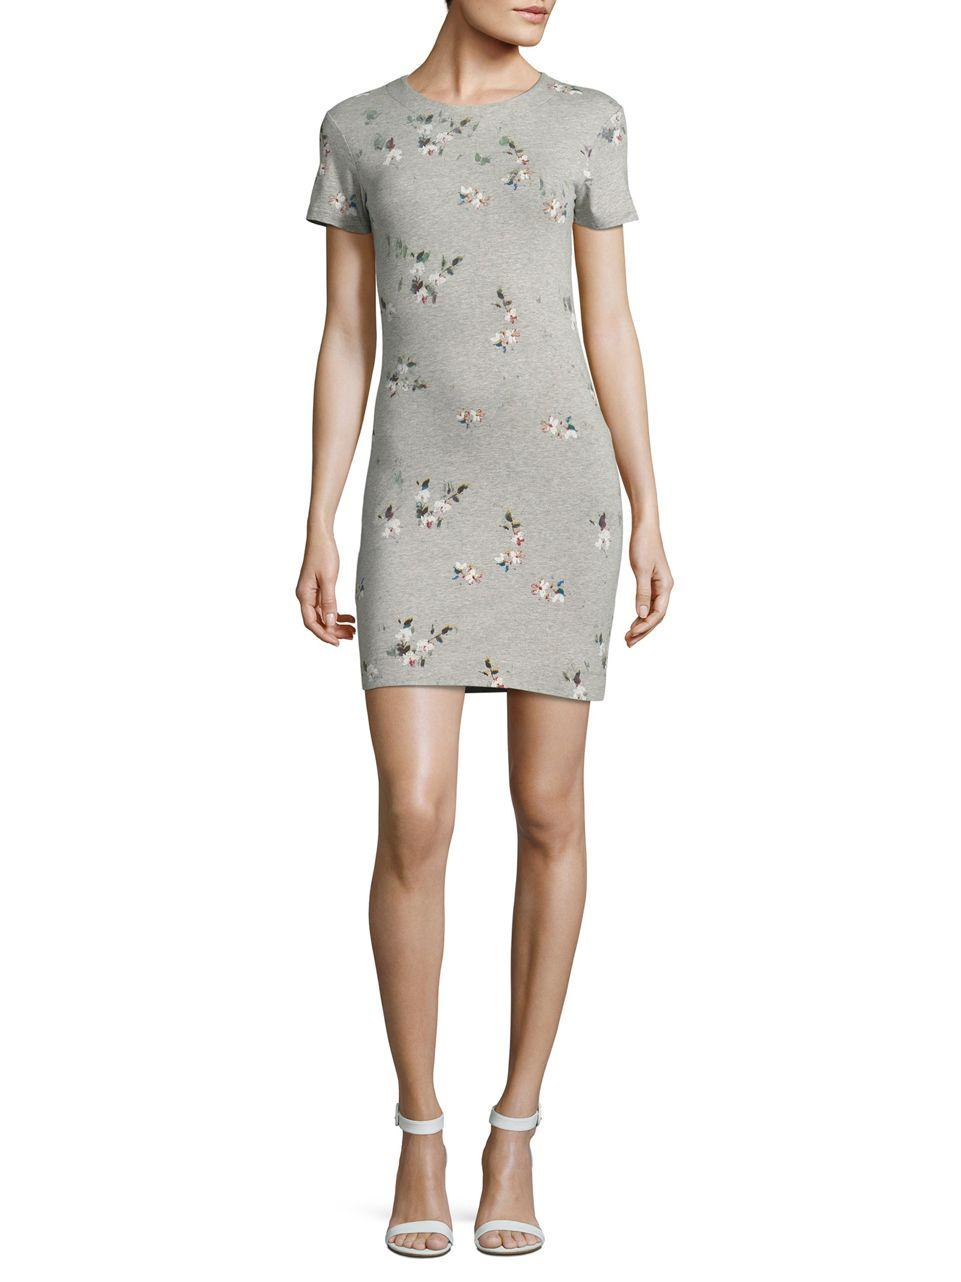 Lyst french connection floral t shirt dress in gray for French connection shirt dress